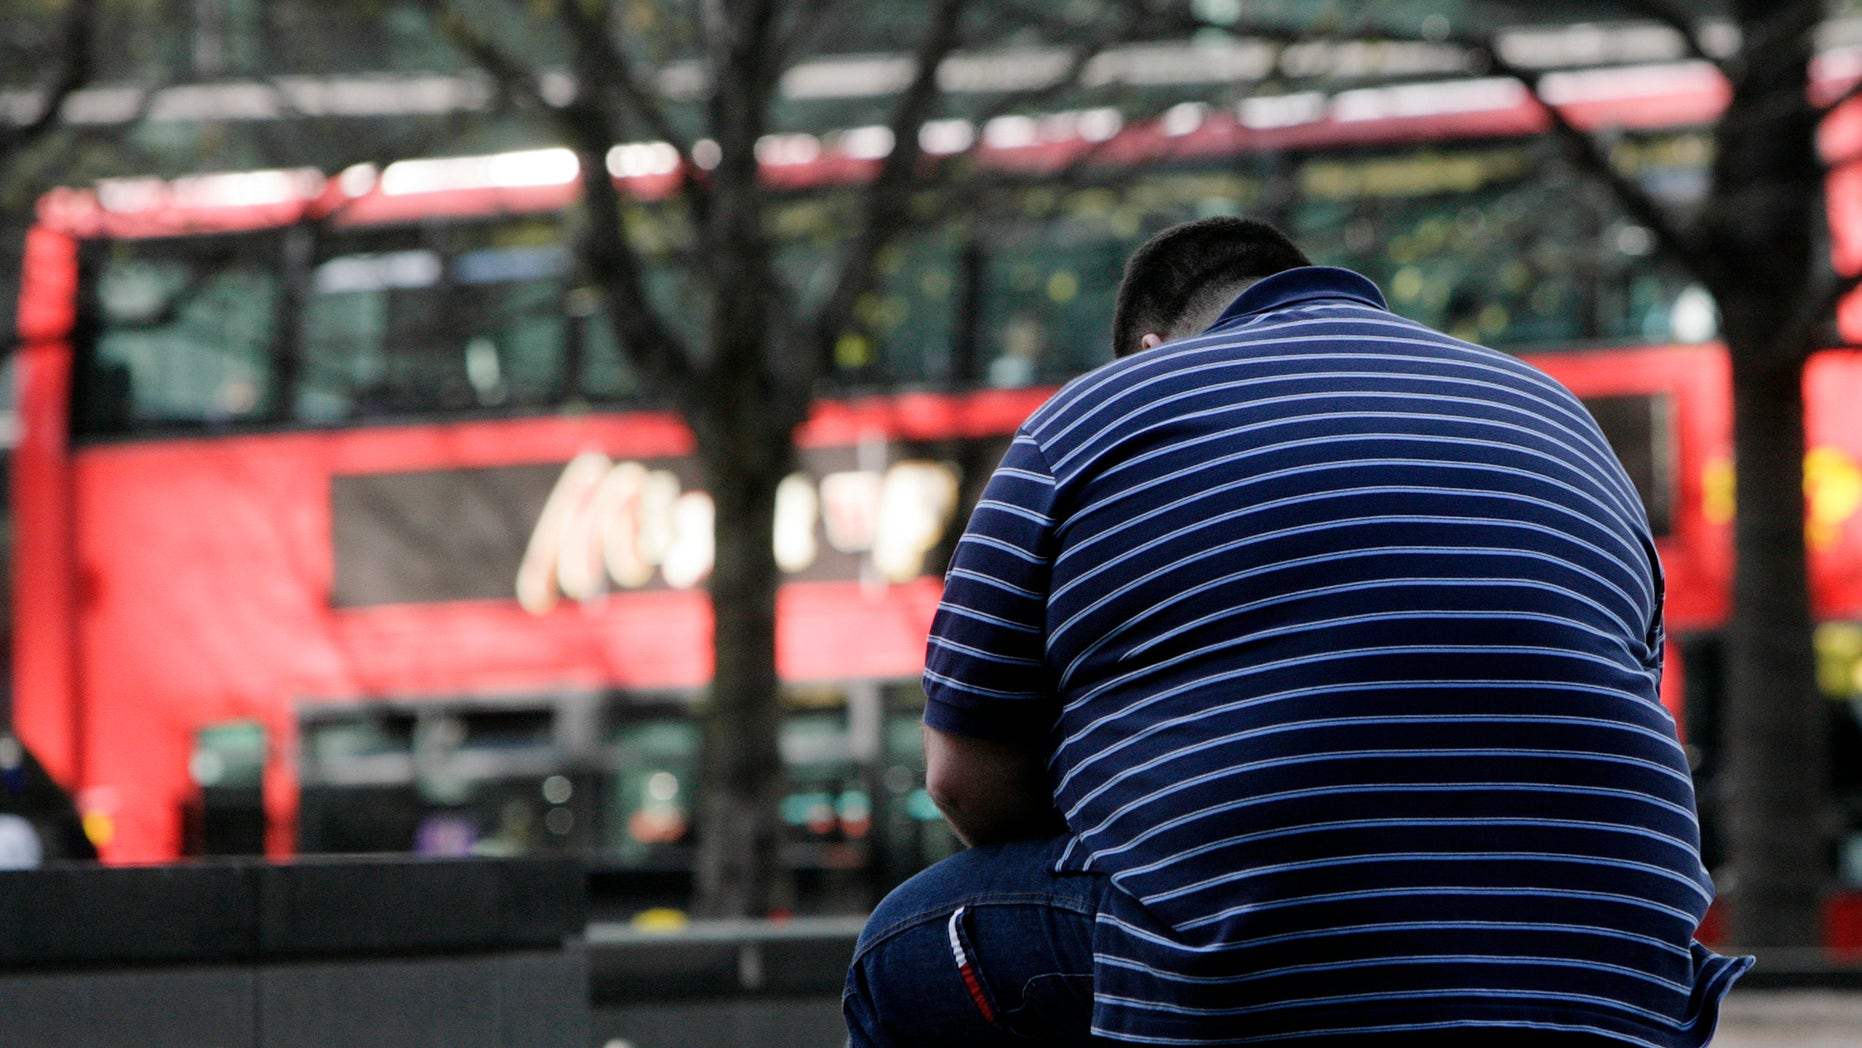 A man sits on a wall in the Canary Wharf financial district of London, April 1, 2009. (REUTERS/Simon Newman)